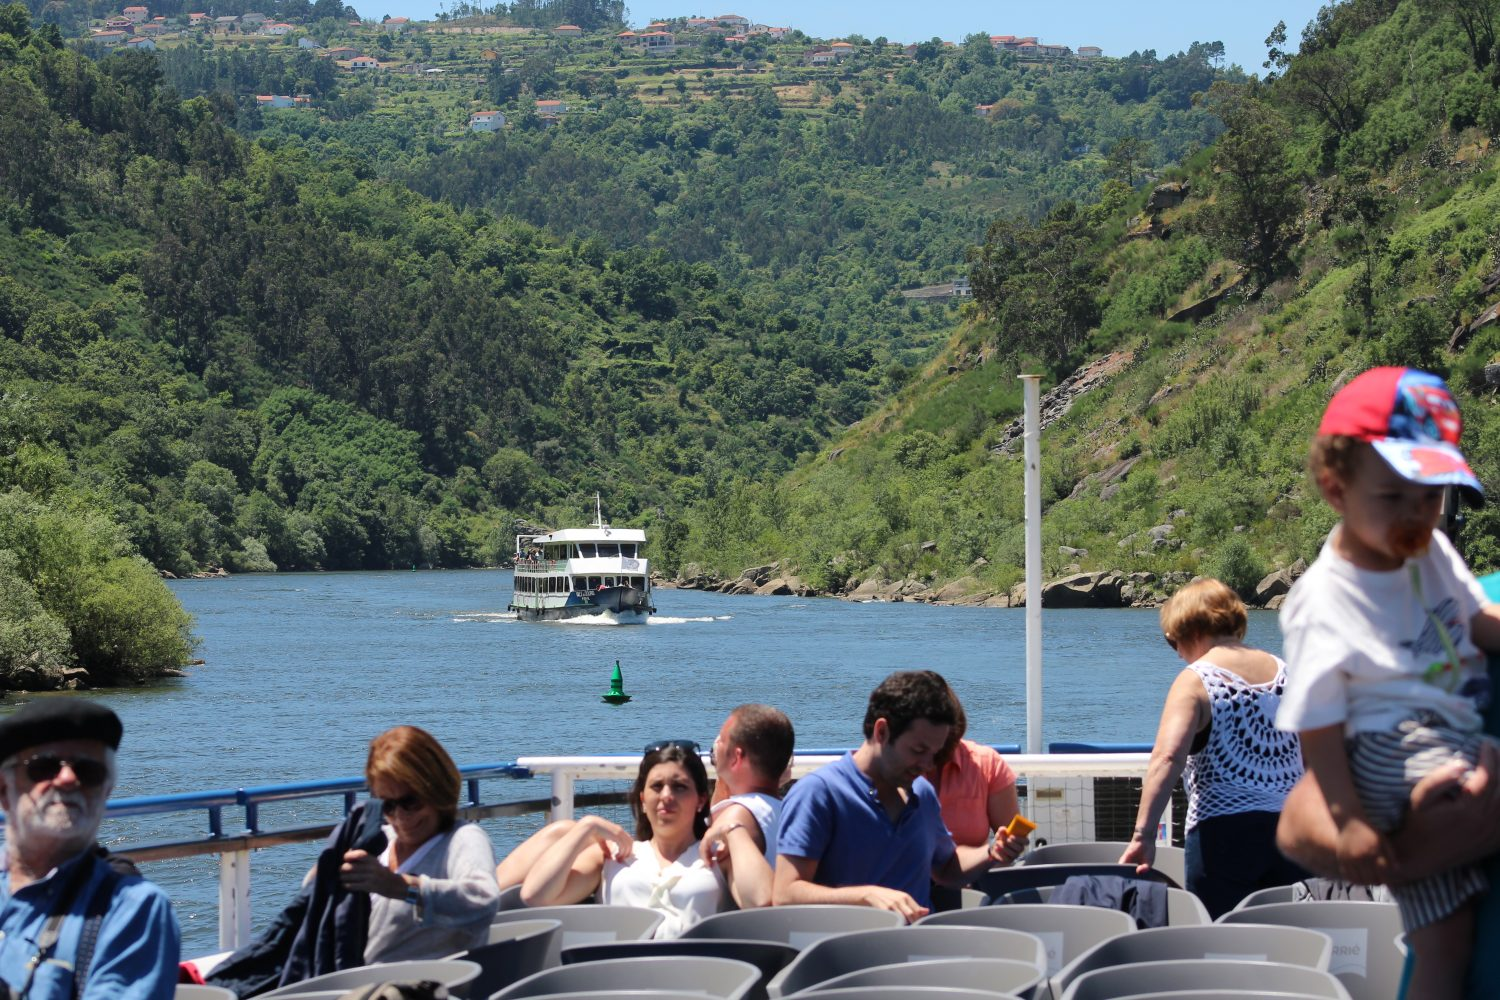 Another boat on the Douro River